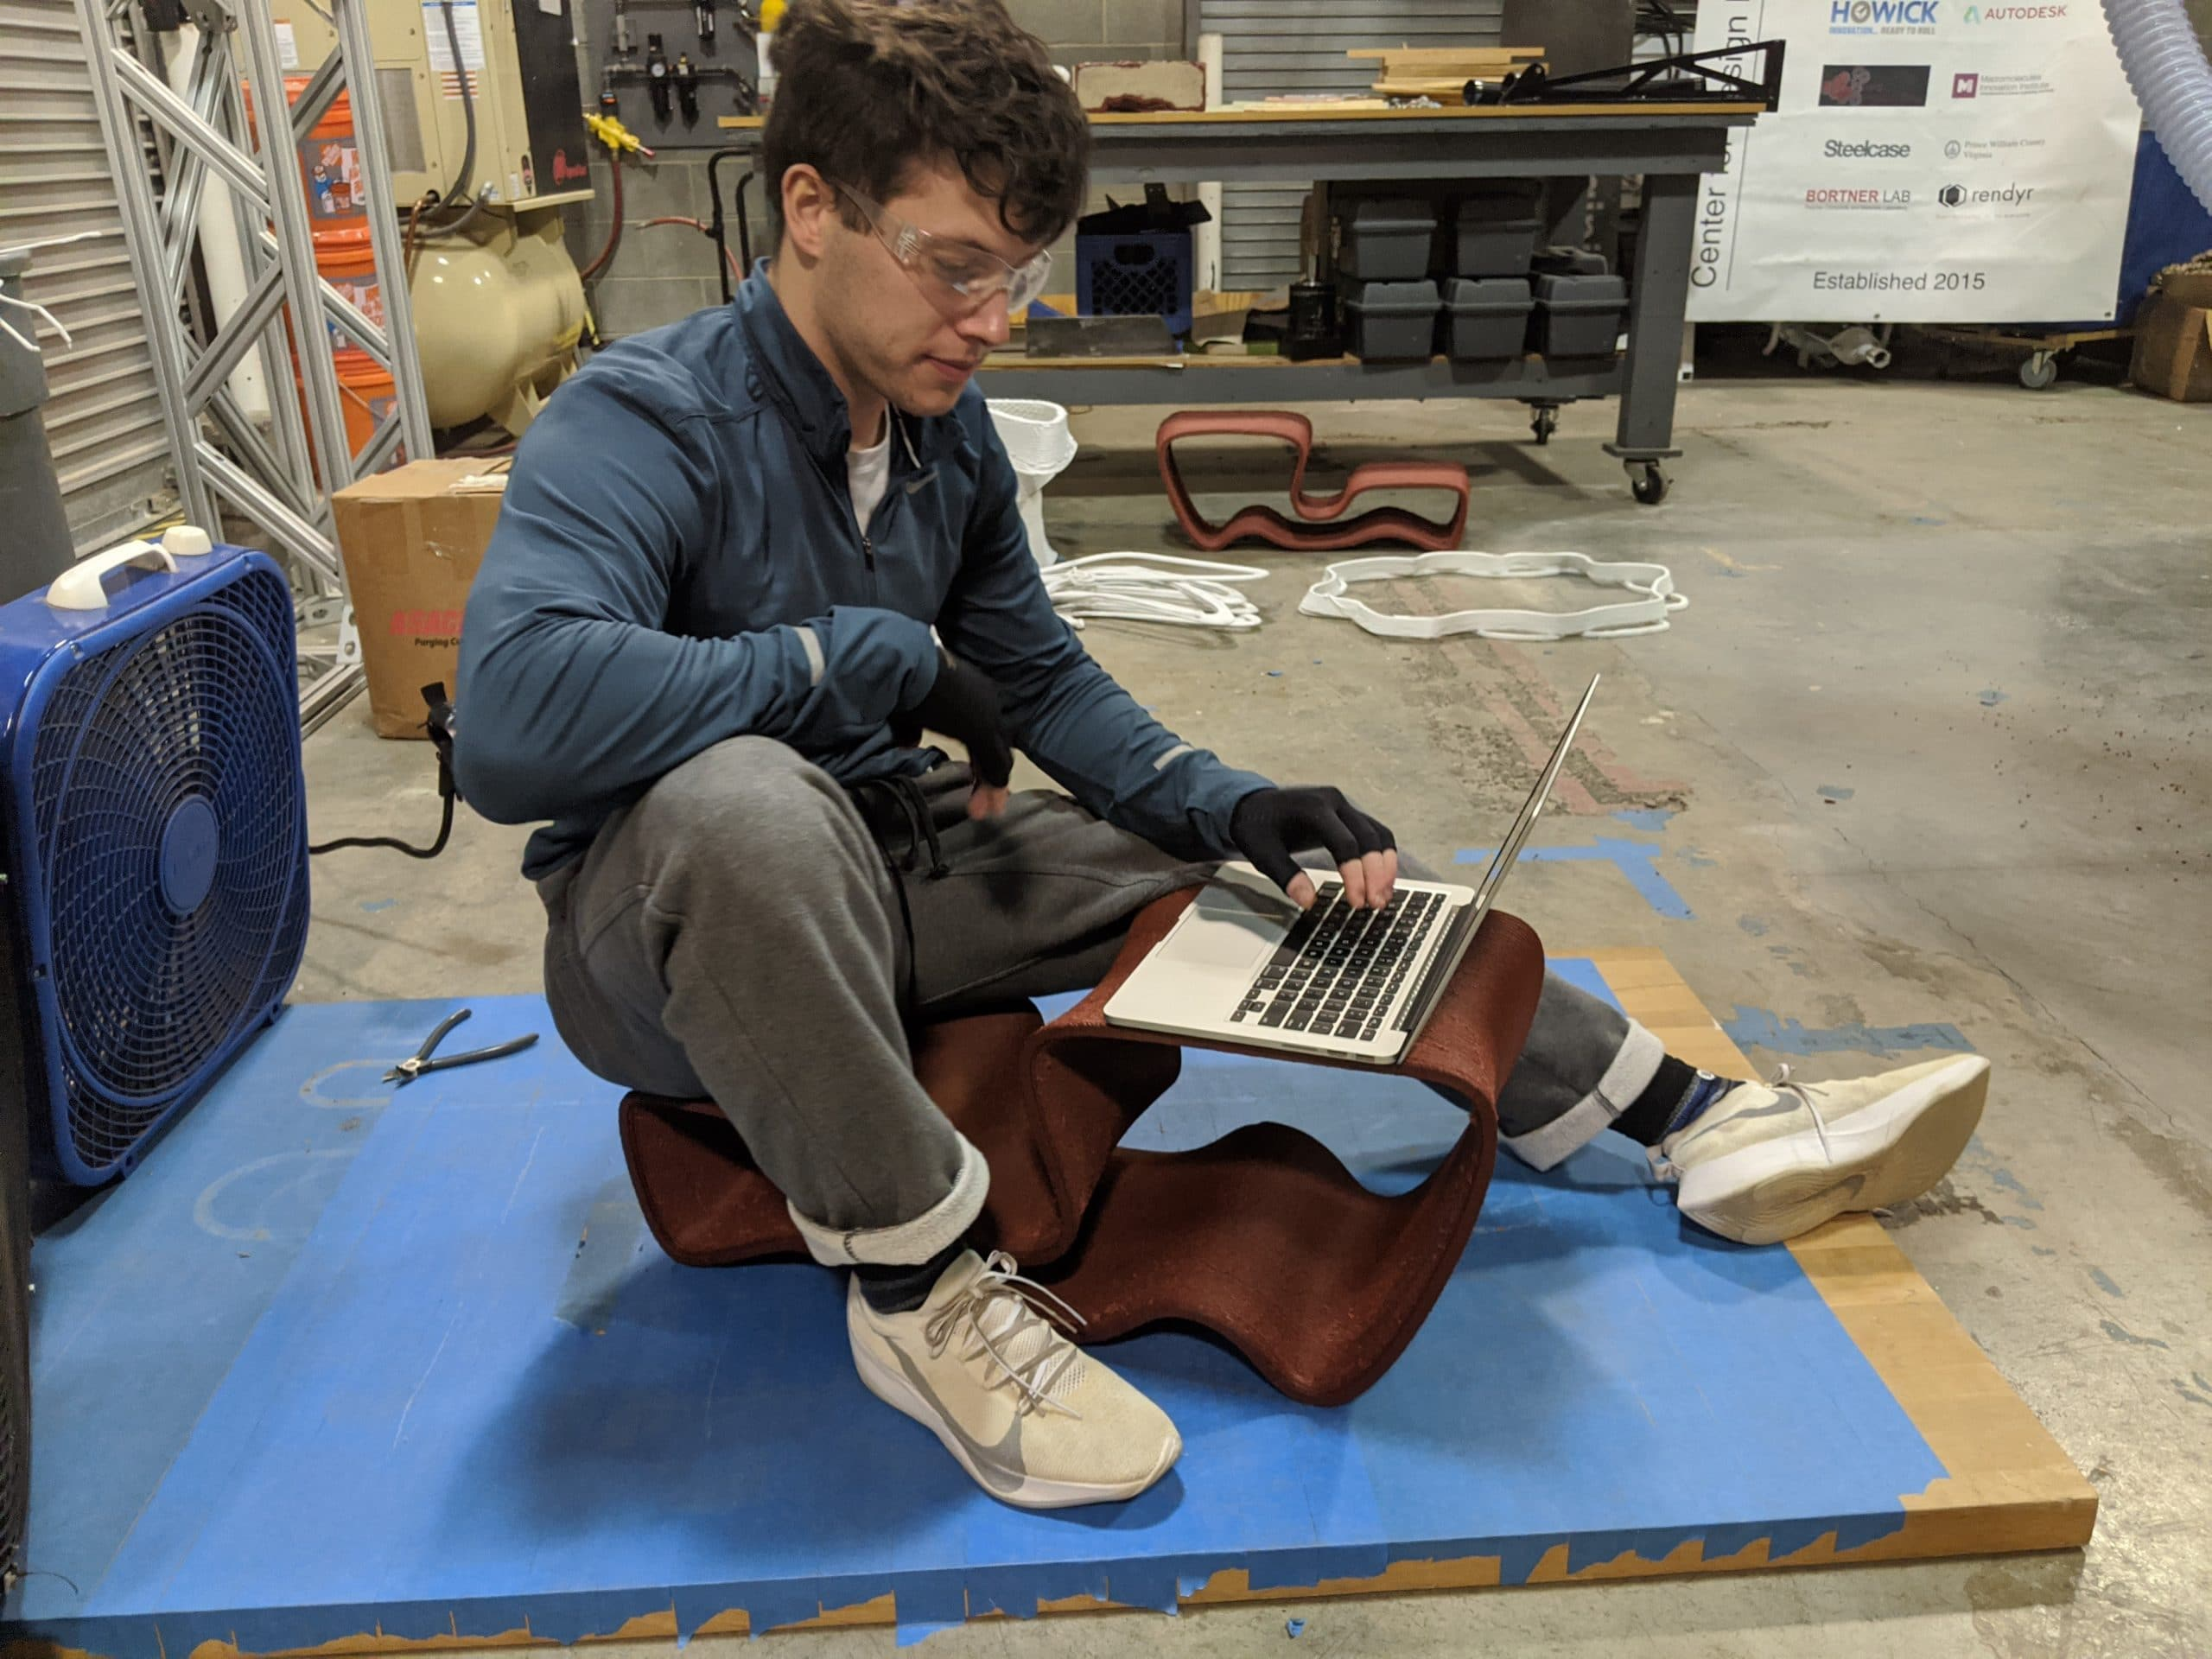 Man sitting & working on his laptop on a 3D printed outdoor chair designed in Gravity Sketch